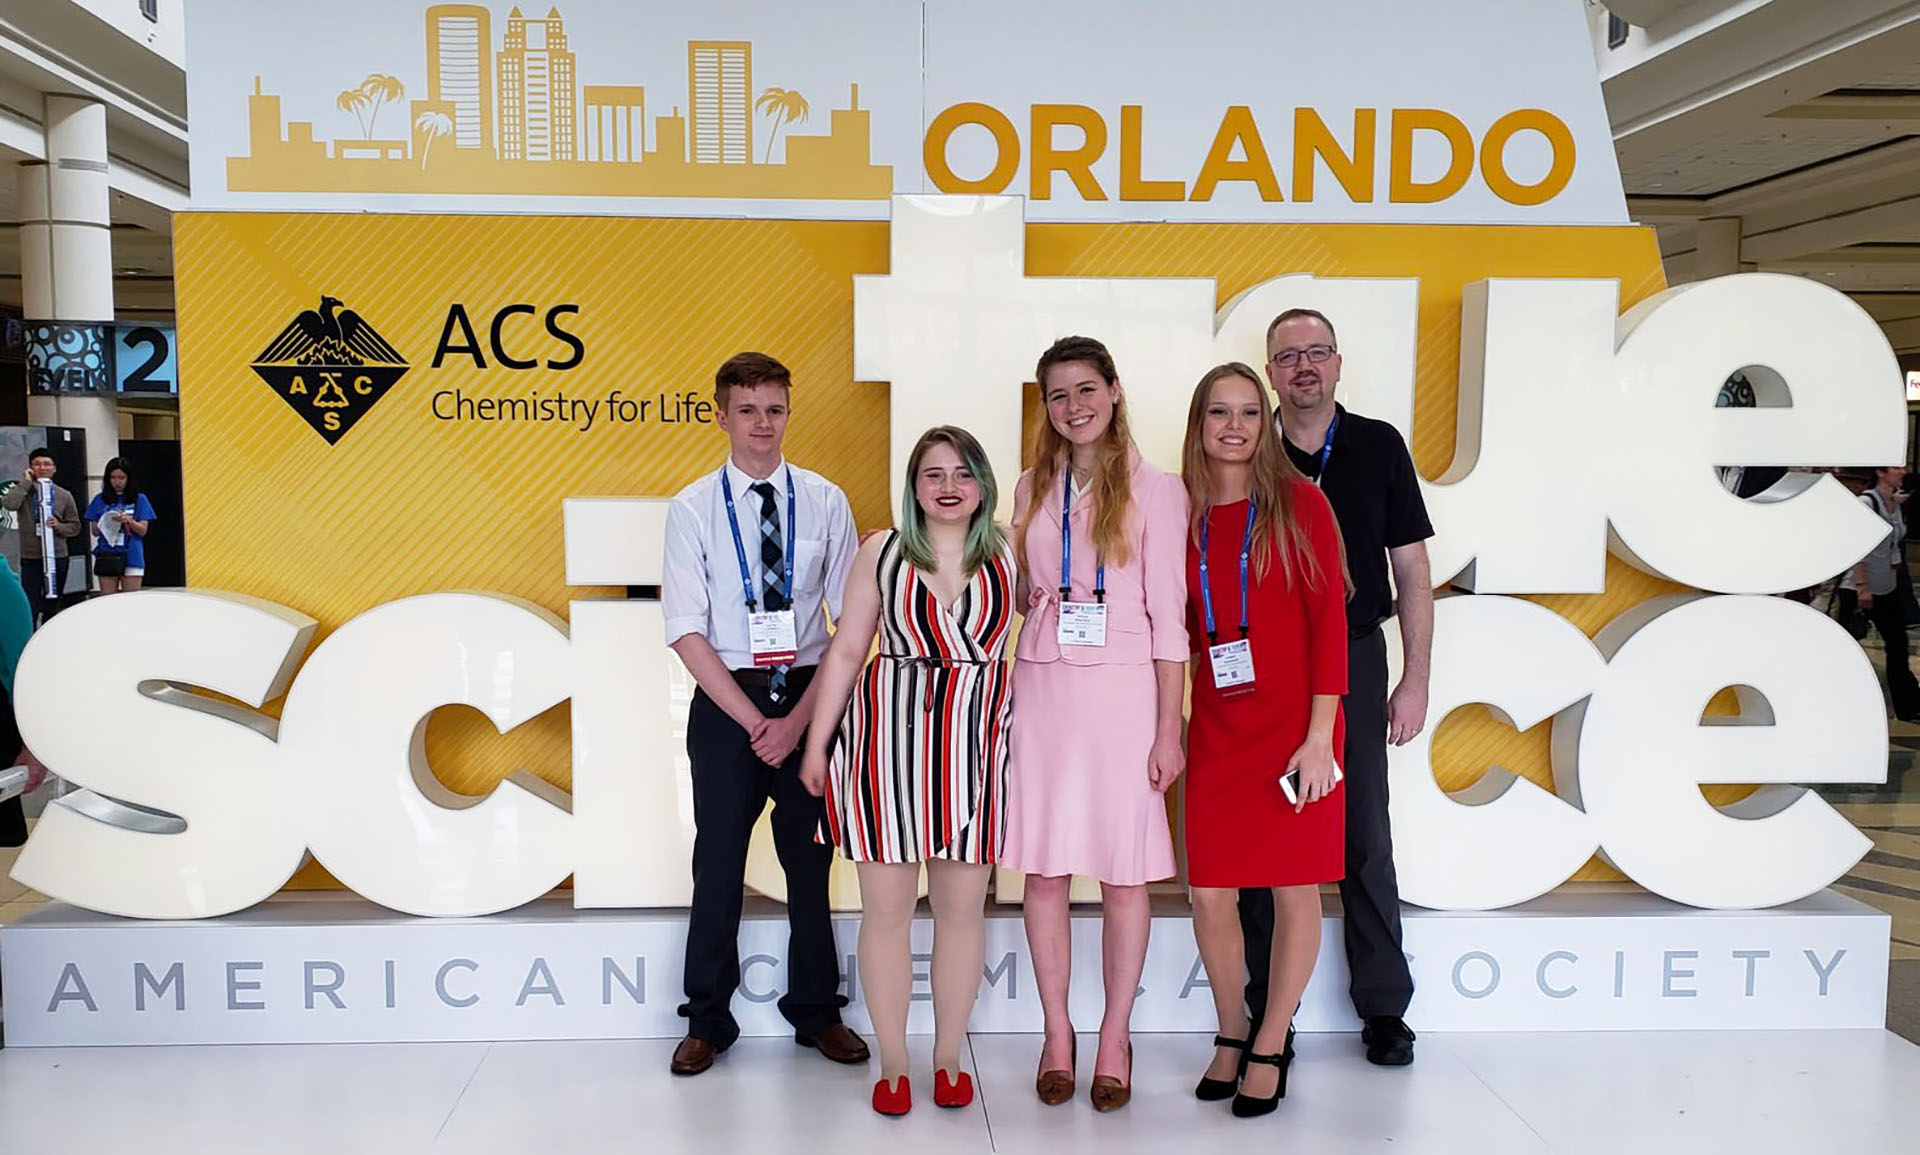 Students at the ACS conference in Orlando